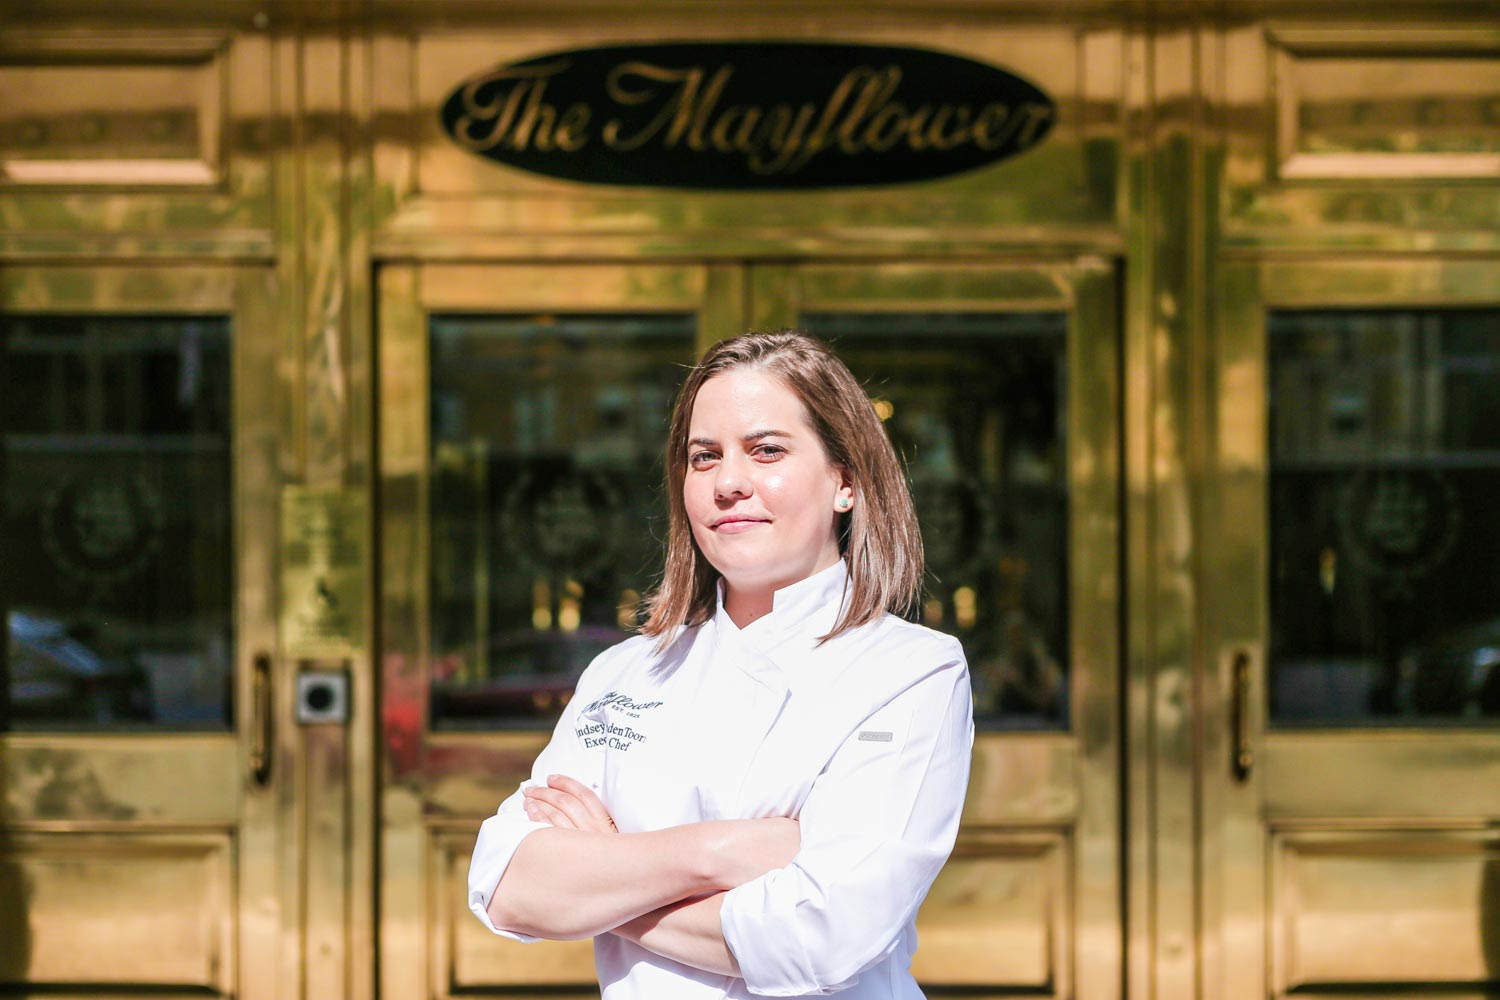 woman wearing white chef jacket standing in front of large copper doors